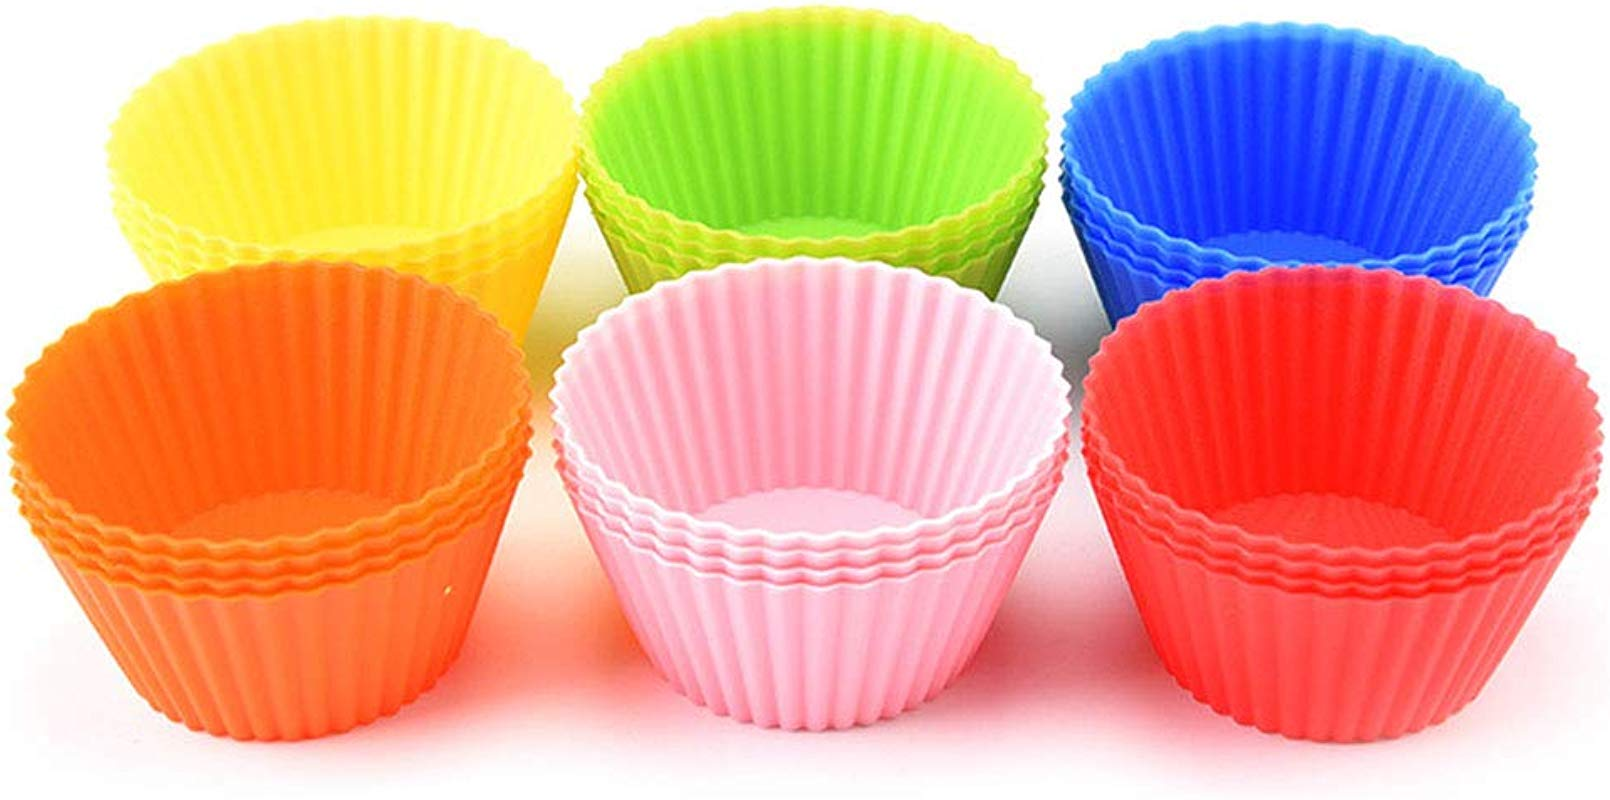 Reusable Silicone Cupcake Liners Baking Cups Mini Muffin Molds 6 Colors Pack Of 24